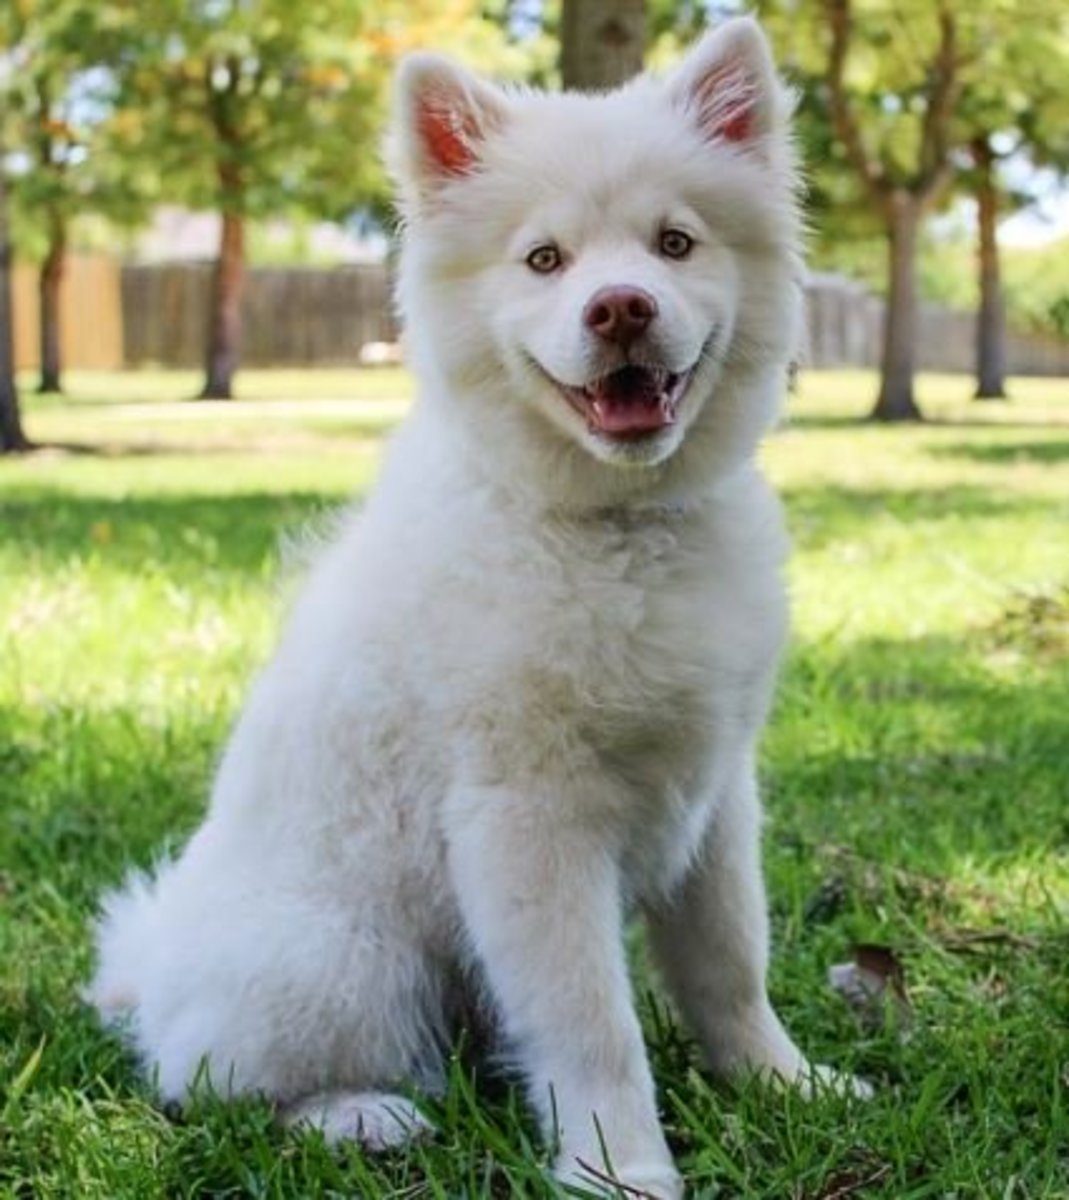 At what point can a puppy breathing rapidly be a cause for serious concern? A good place to start is through an assessment of the normal breathing rate ...